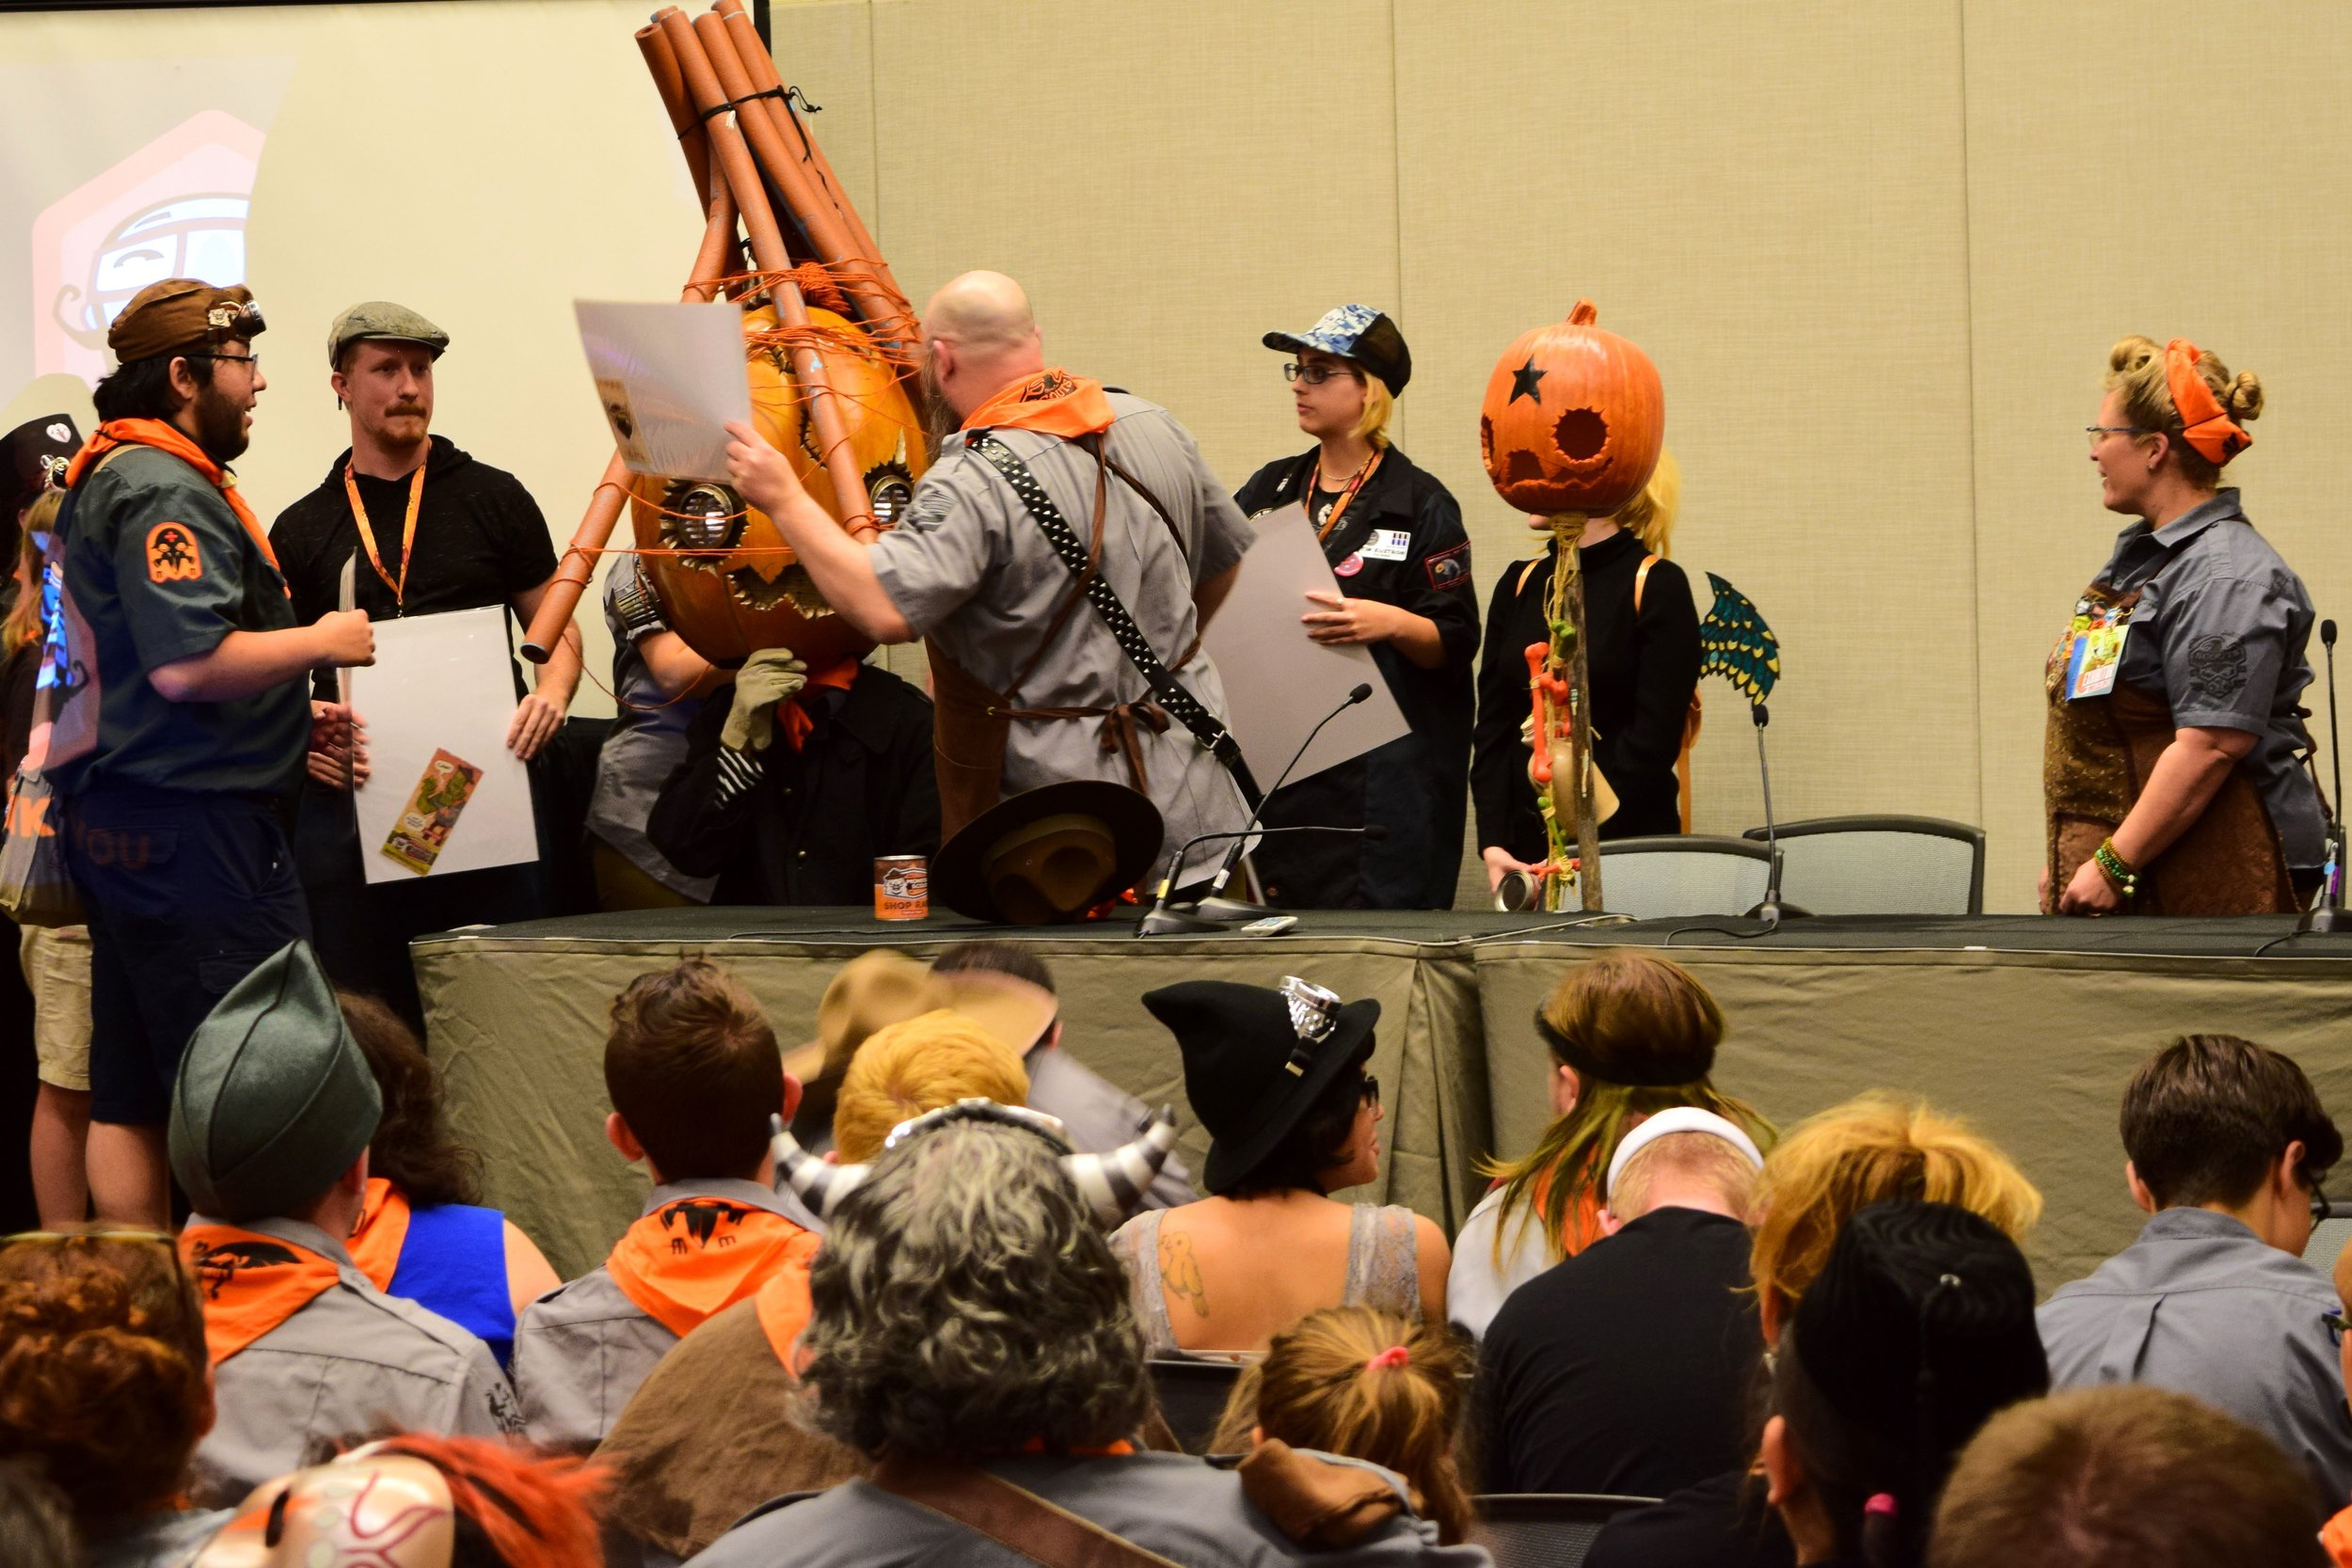 Prizes are awarded at the Monster Scout Rally at Phoenix Comic Con 2017.